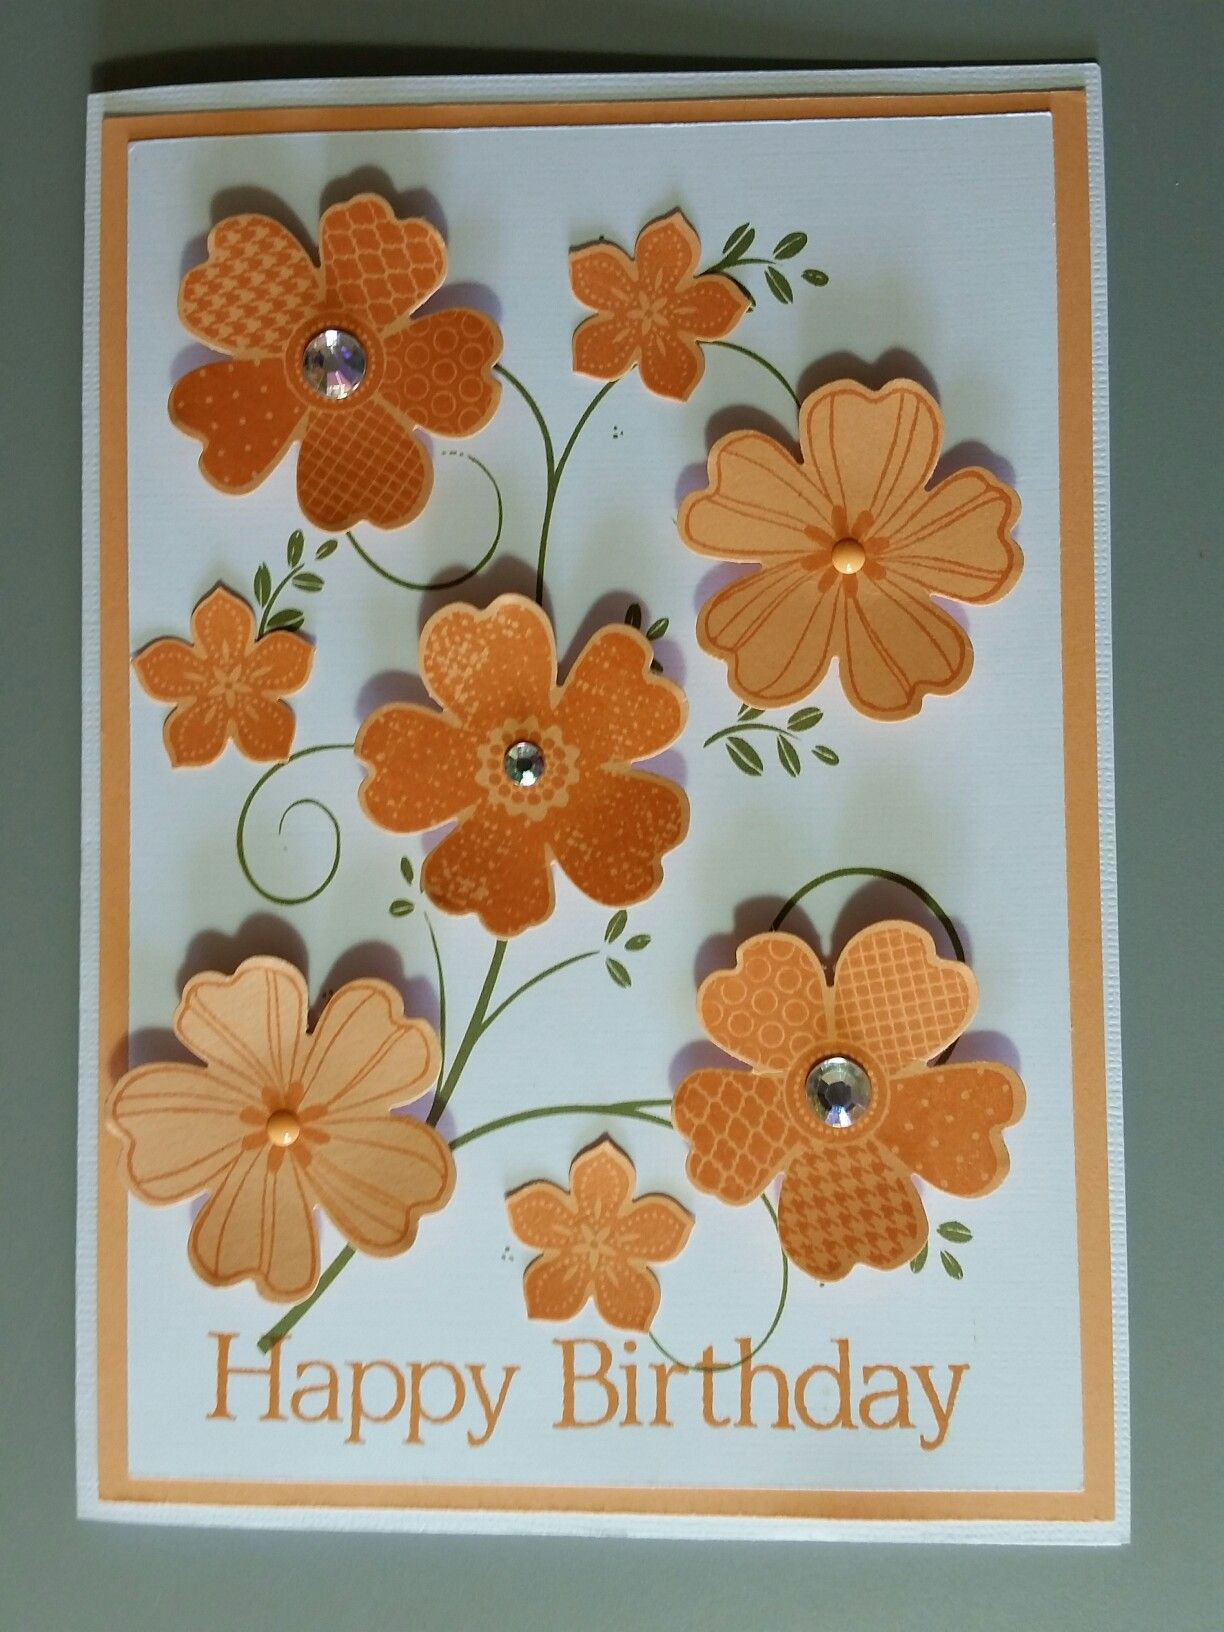 Birthday card designed by sandy made with stampin up flower shop birthday card designed by sandy made with stampin up flower shop stamp set punches izmirmasajfo Choice Image